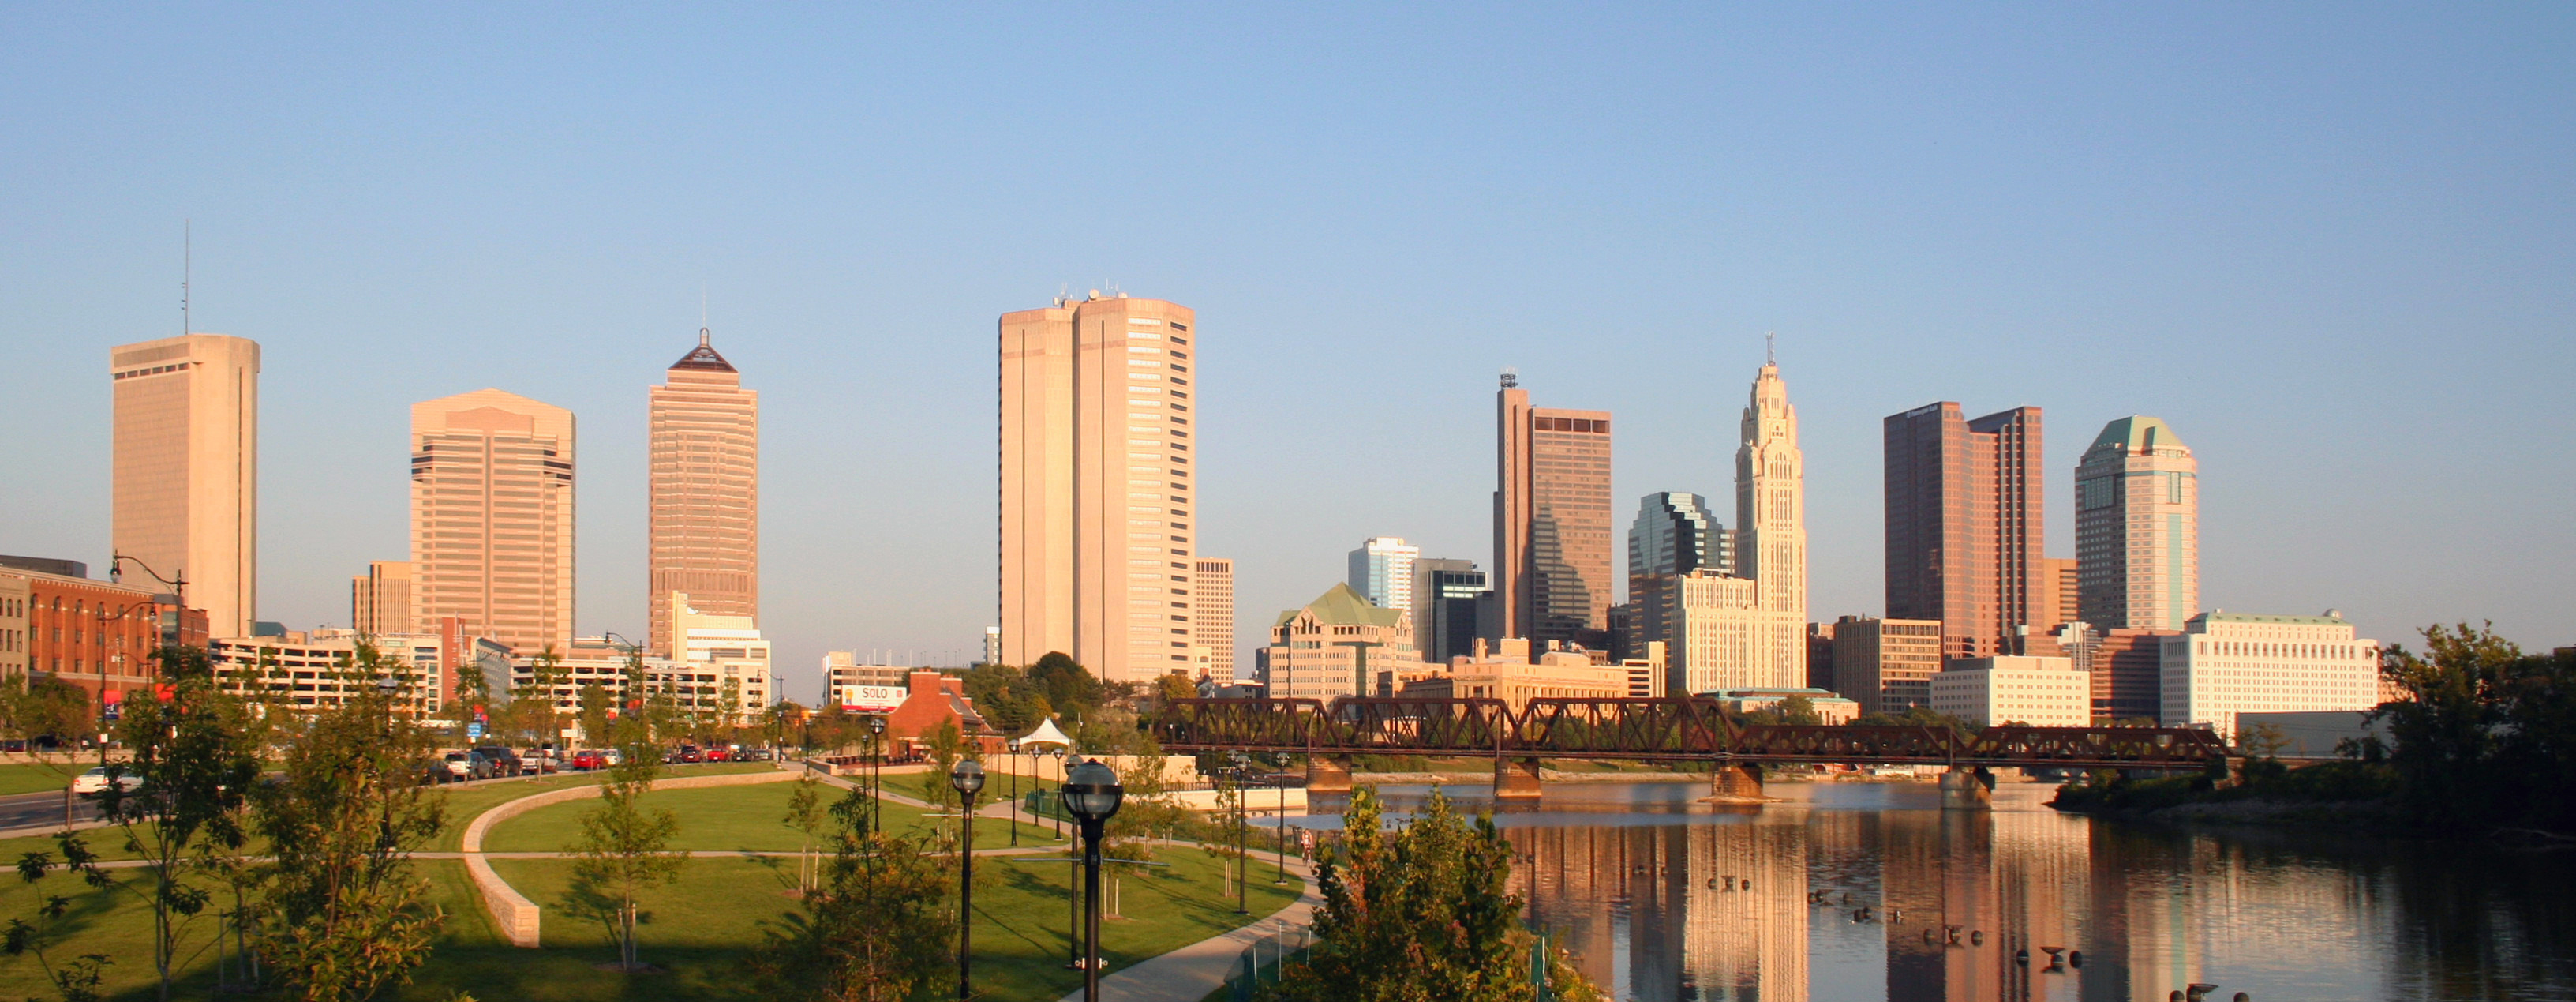 Photo courtesy of http://en.wikipedia.org/wiki/File:Columbus-ohio-skyline-panorama.jpg